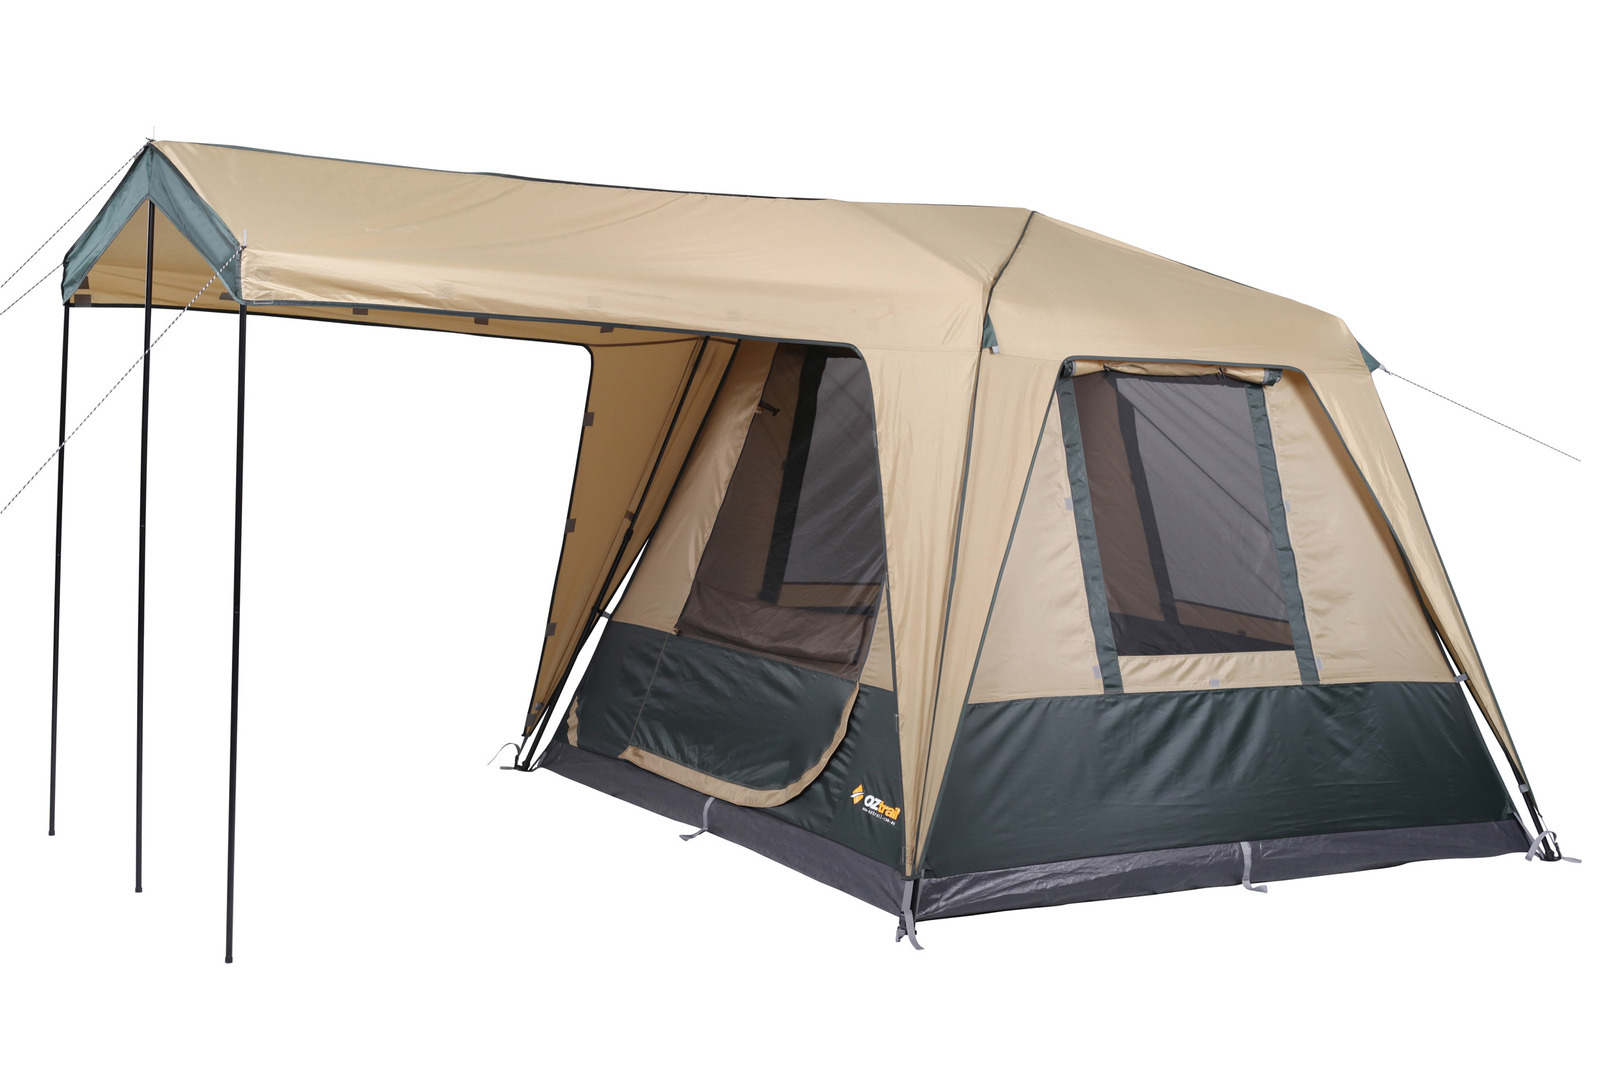 OZtrail Cruiser 240 Fast Frame Tent  sc 1 st  Tentworld & Tents - Delivering Quality Camping Tents Australia Wide - Tentworld